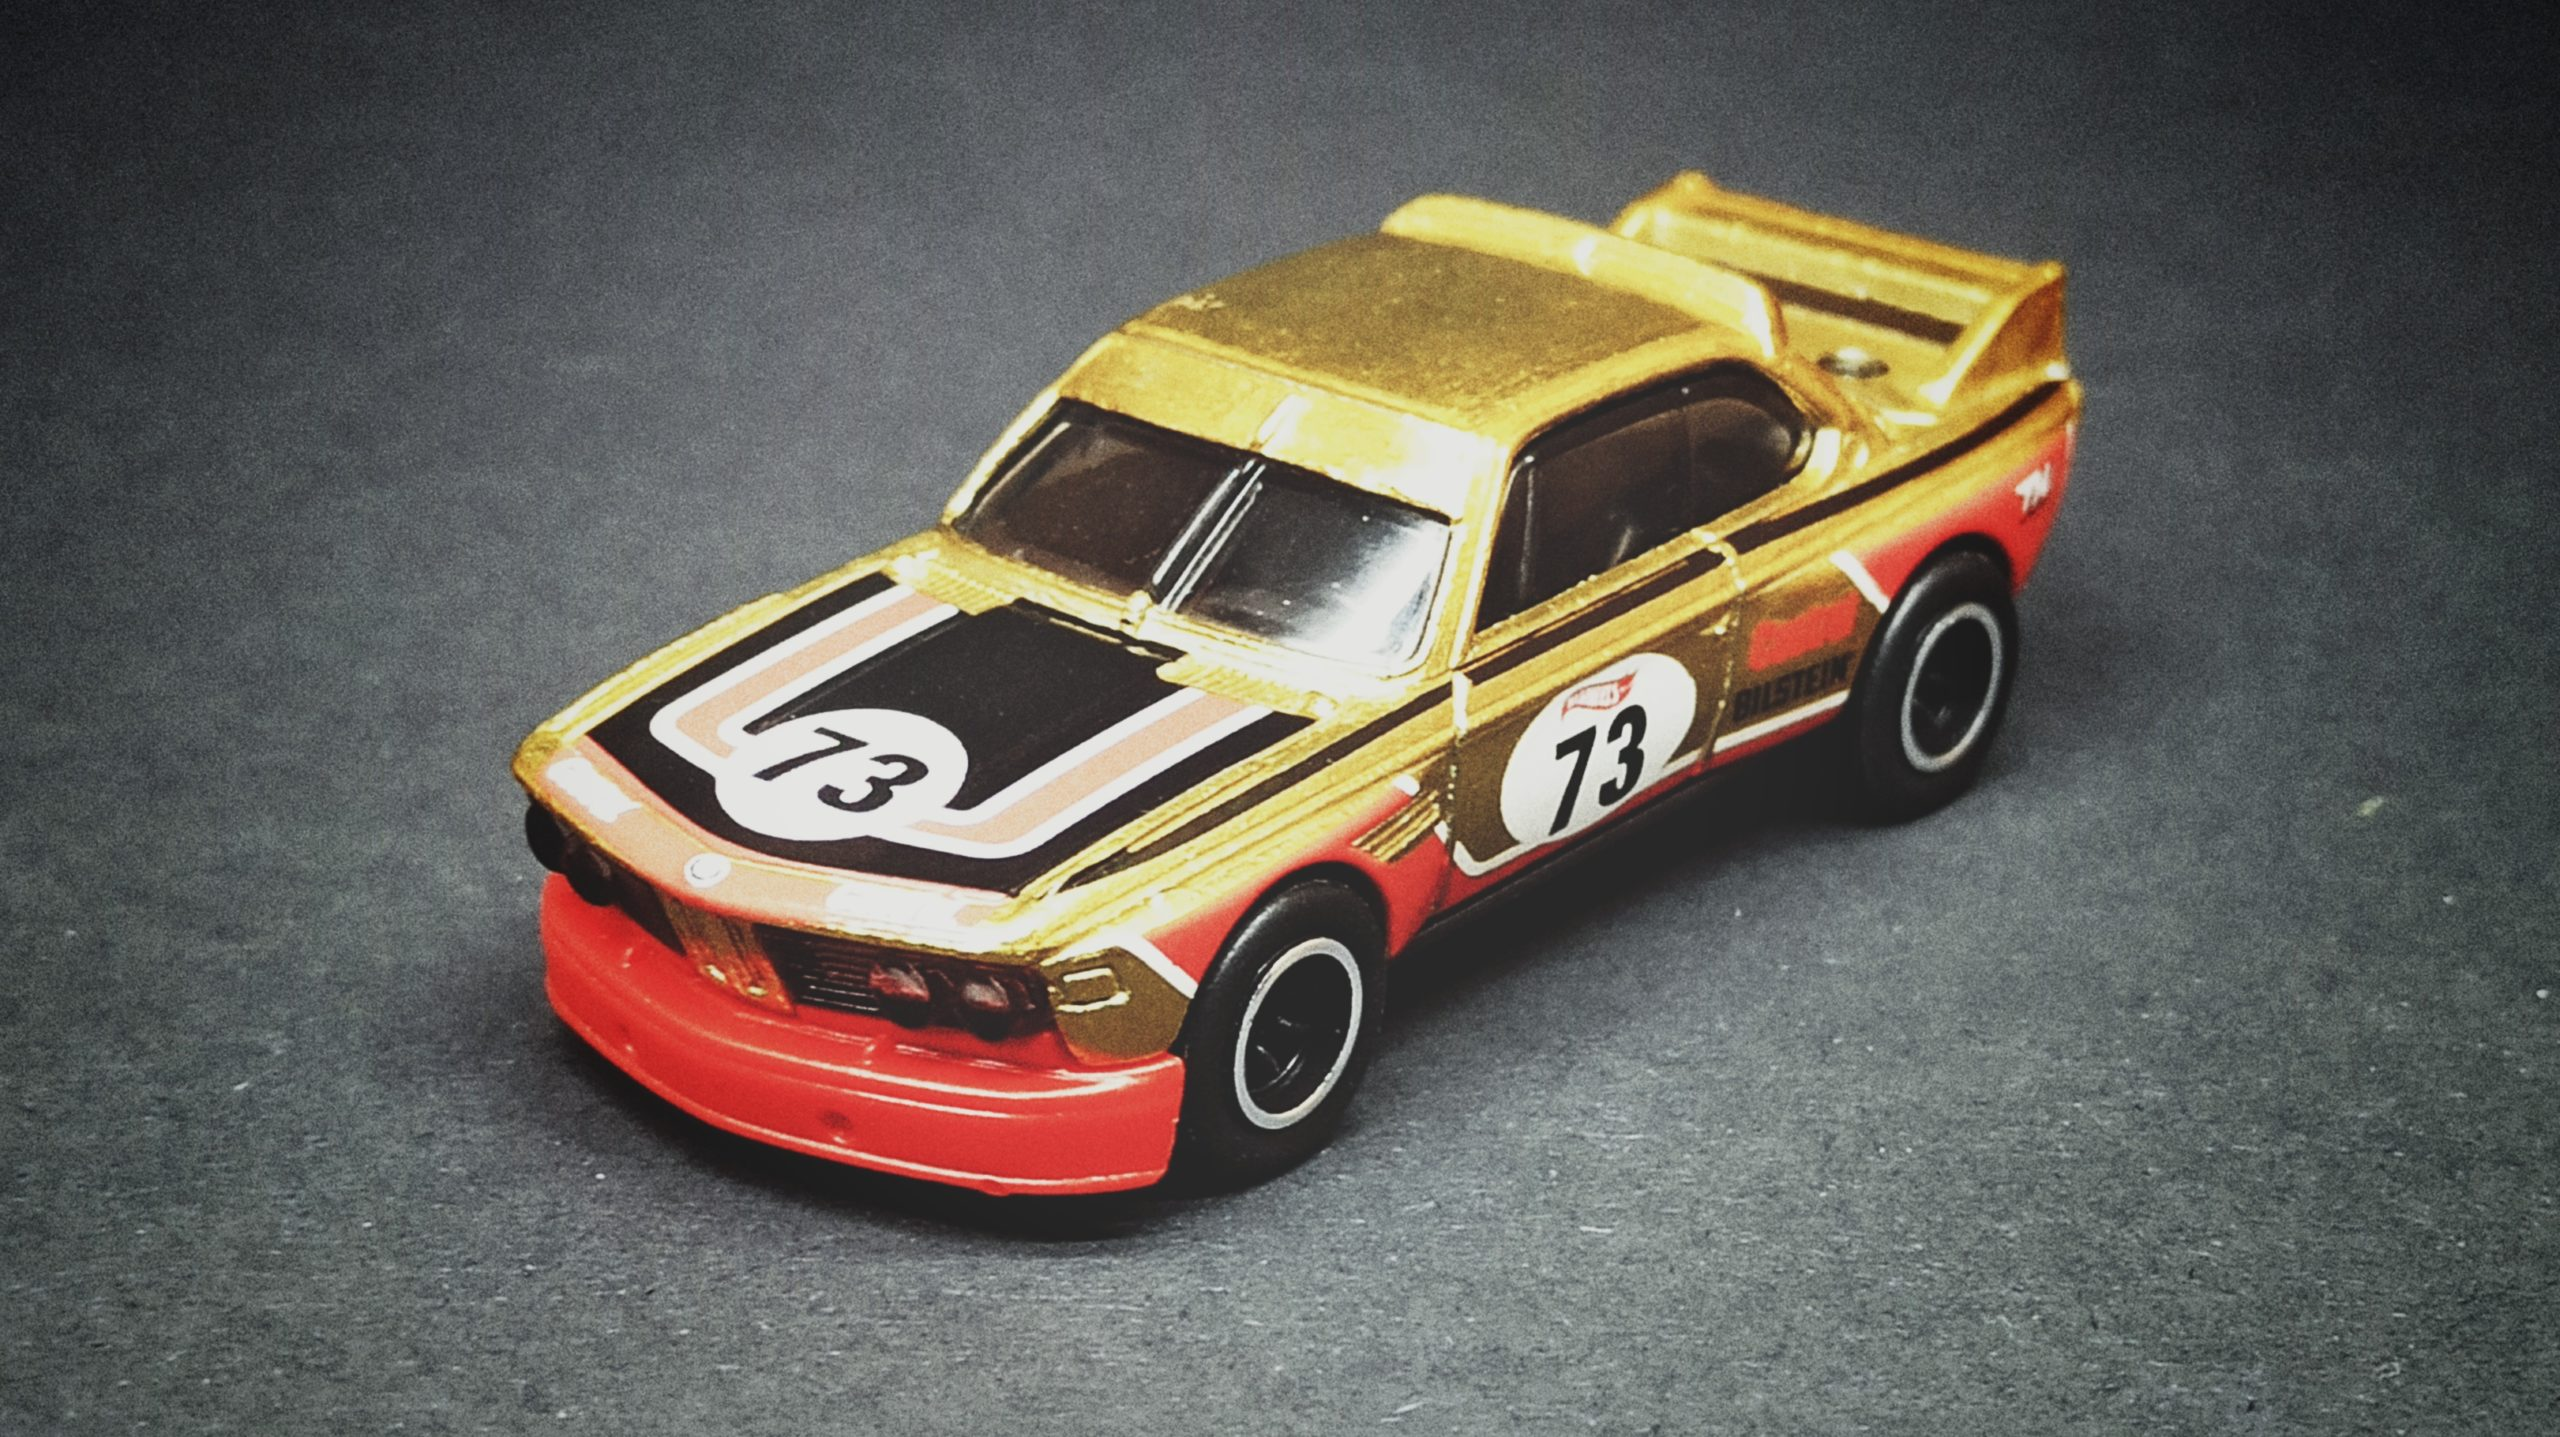 Hot Wheels '73 BMW 3.0 CSL Race Car (HCY20) 2022 (34/250) Retro Racers (2/10) spectraflame yellow (gold) Super Treasure Hunt (STH) top angle